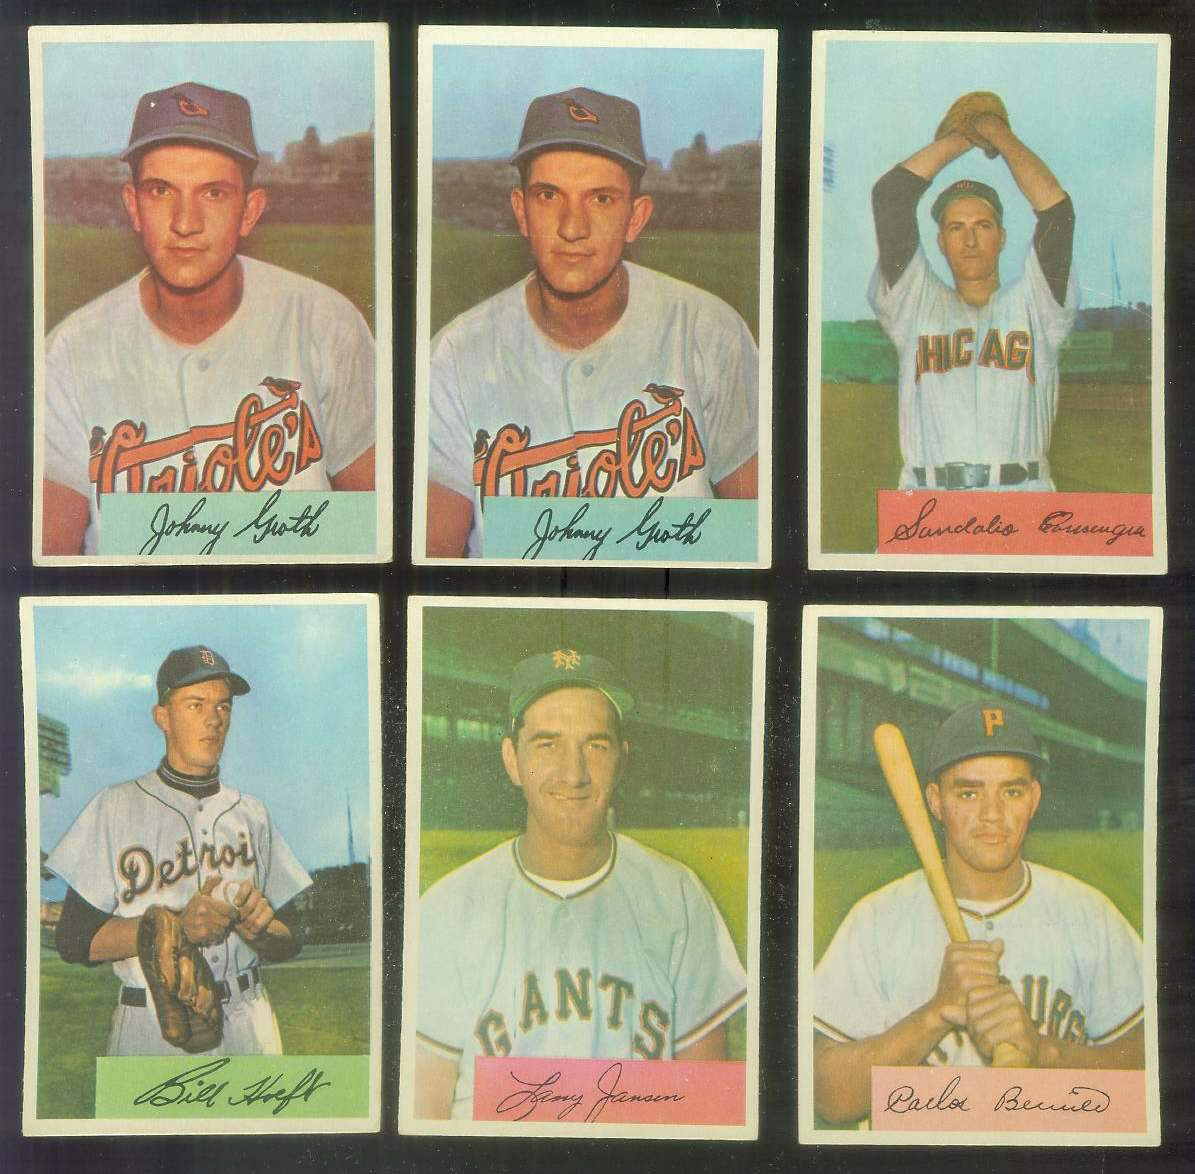 1954 Bowman #165 Johnny Groth (Orioles) Baseball cards value